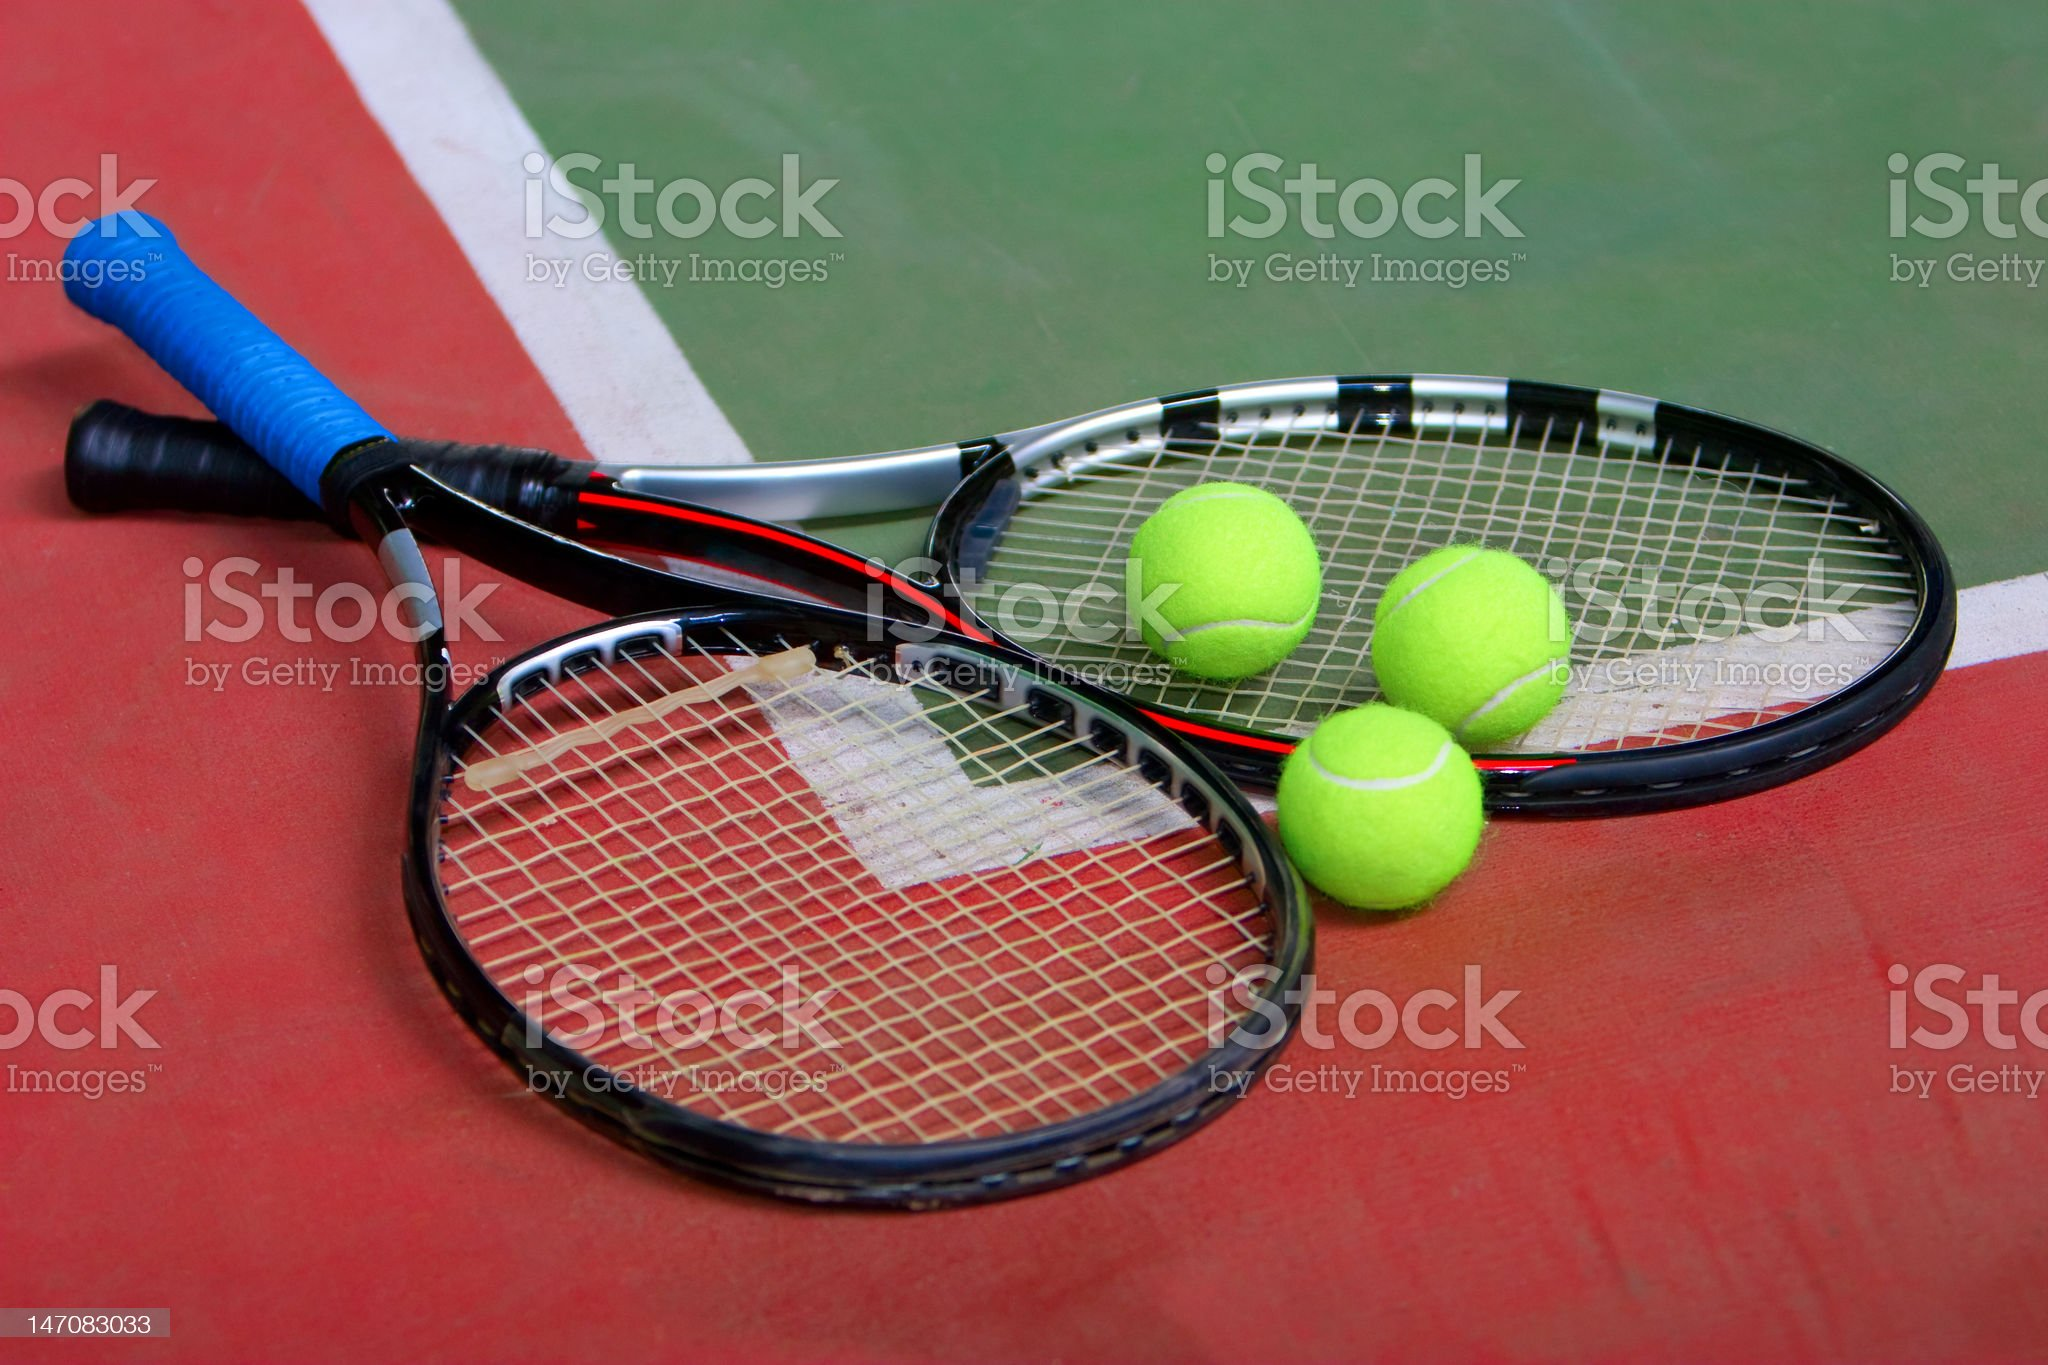 Tennis rackets, balls and court royalty-free stock photo